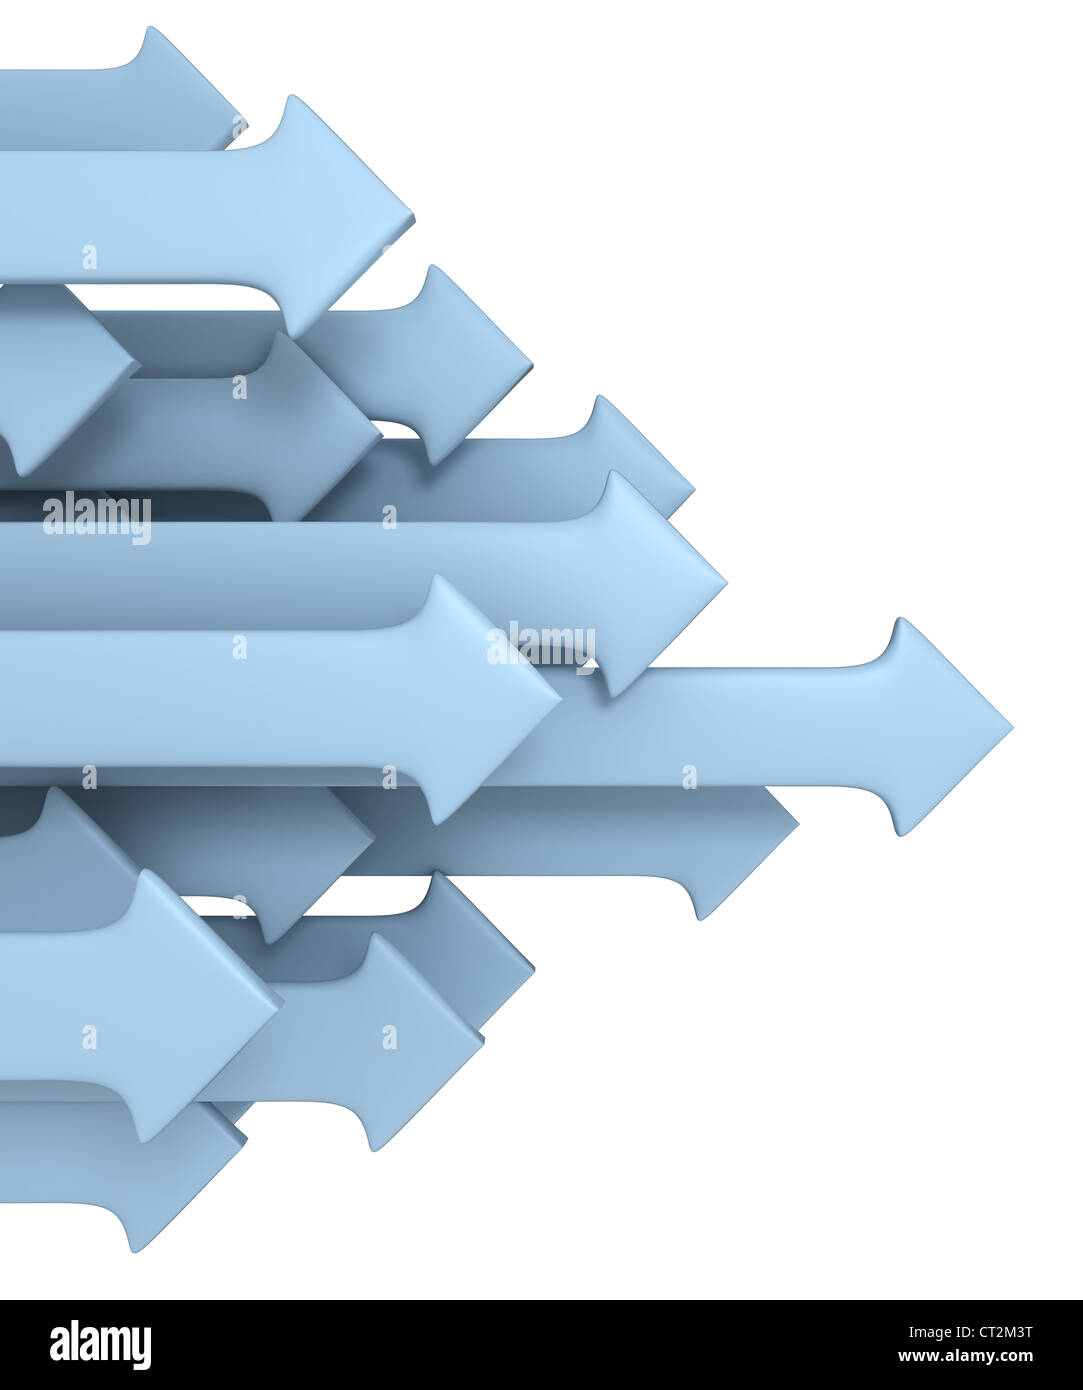 Group of arrows - Stock Image